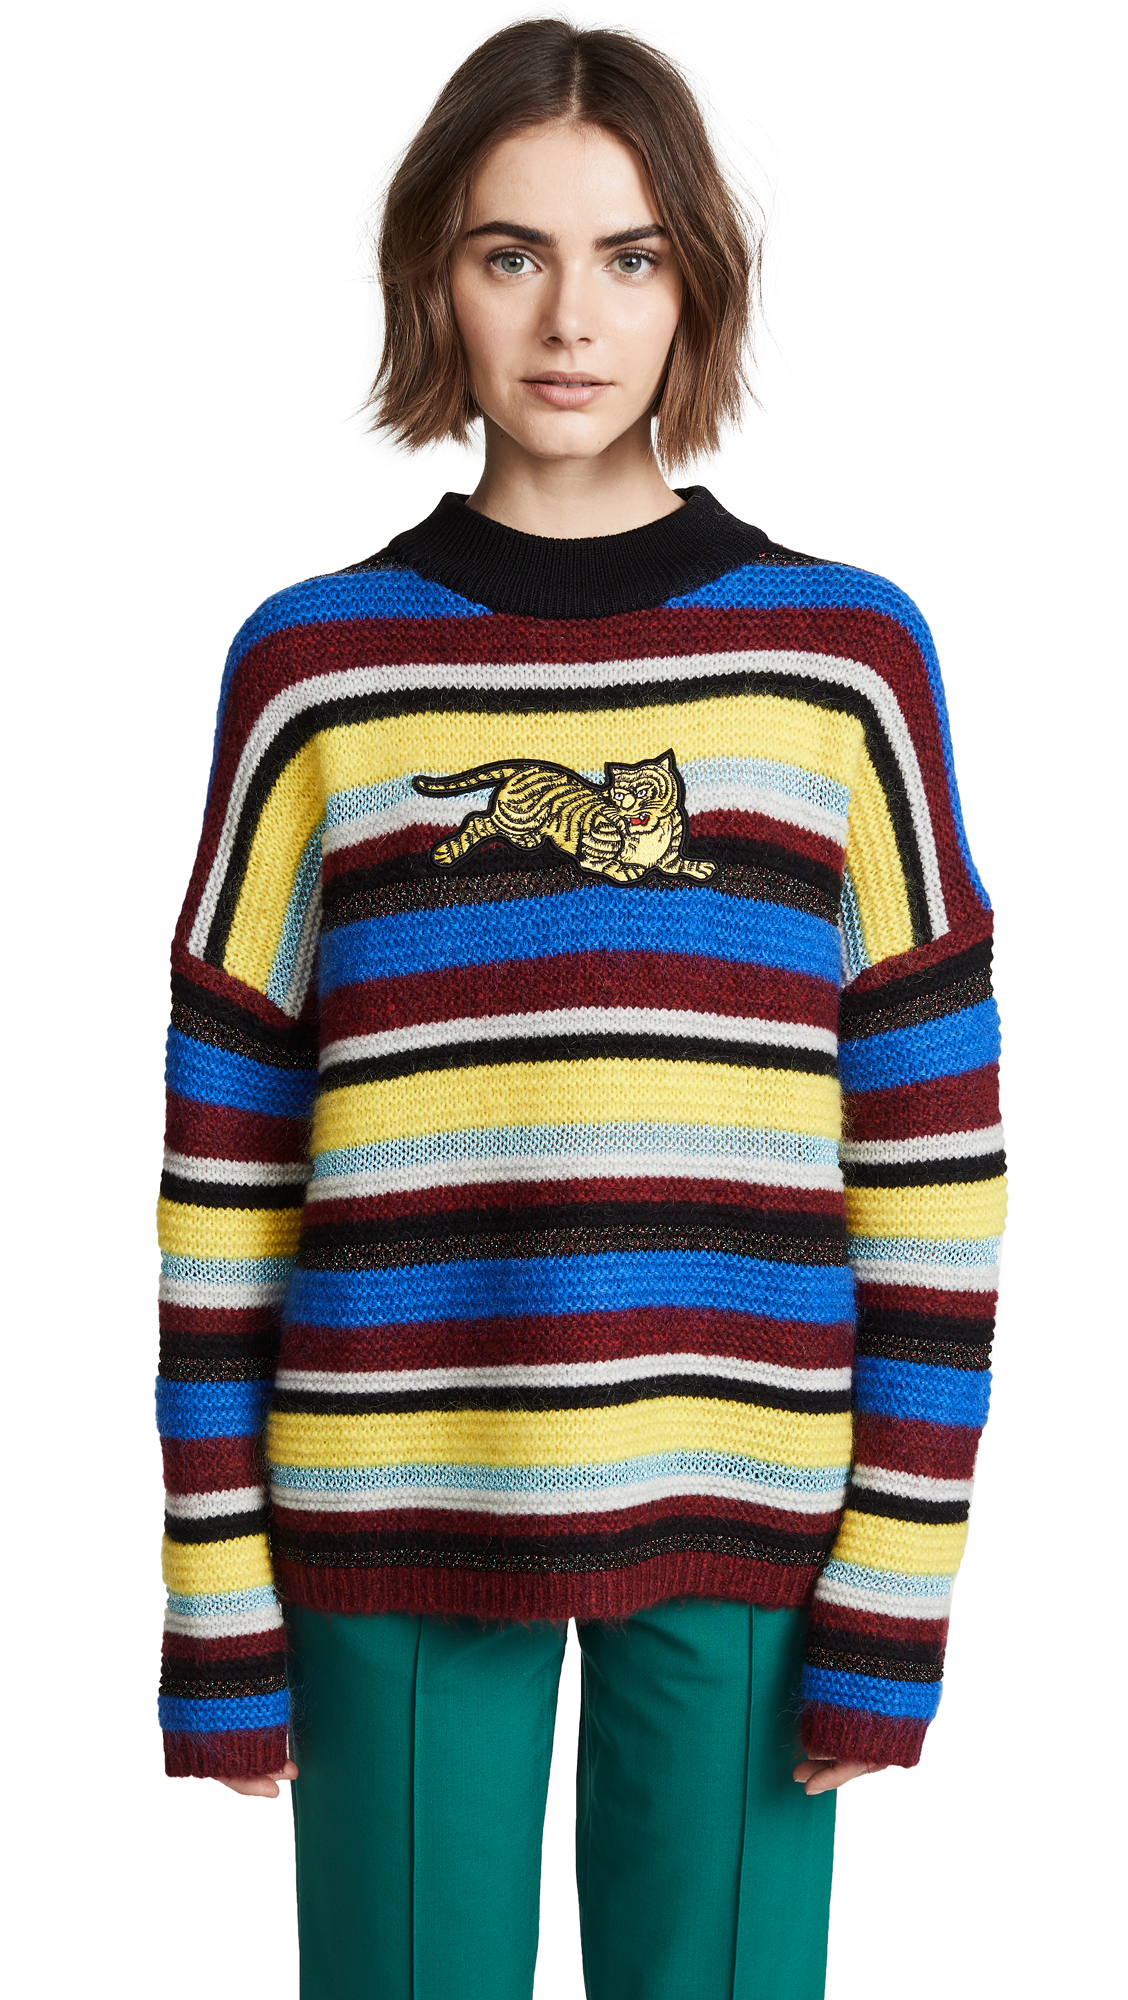 Jumping Tiger Appliquéd Striped Wool-Blend Sweater, Multicolor